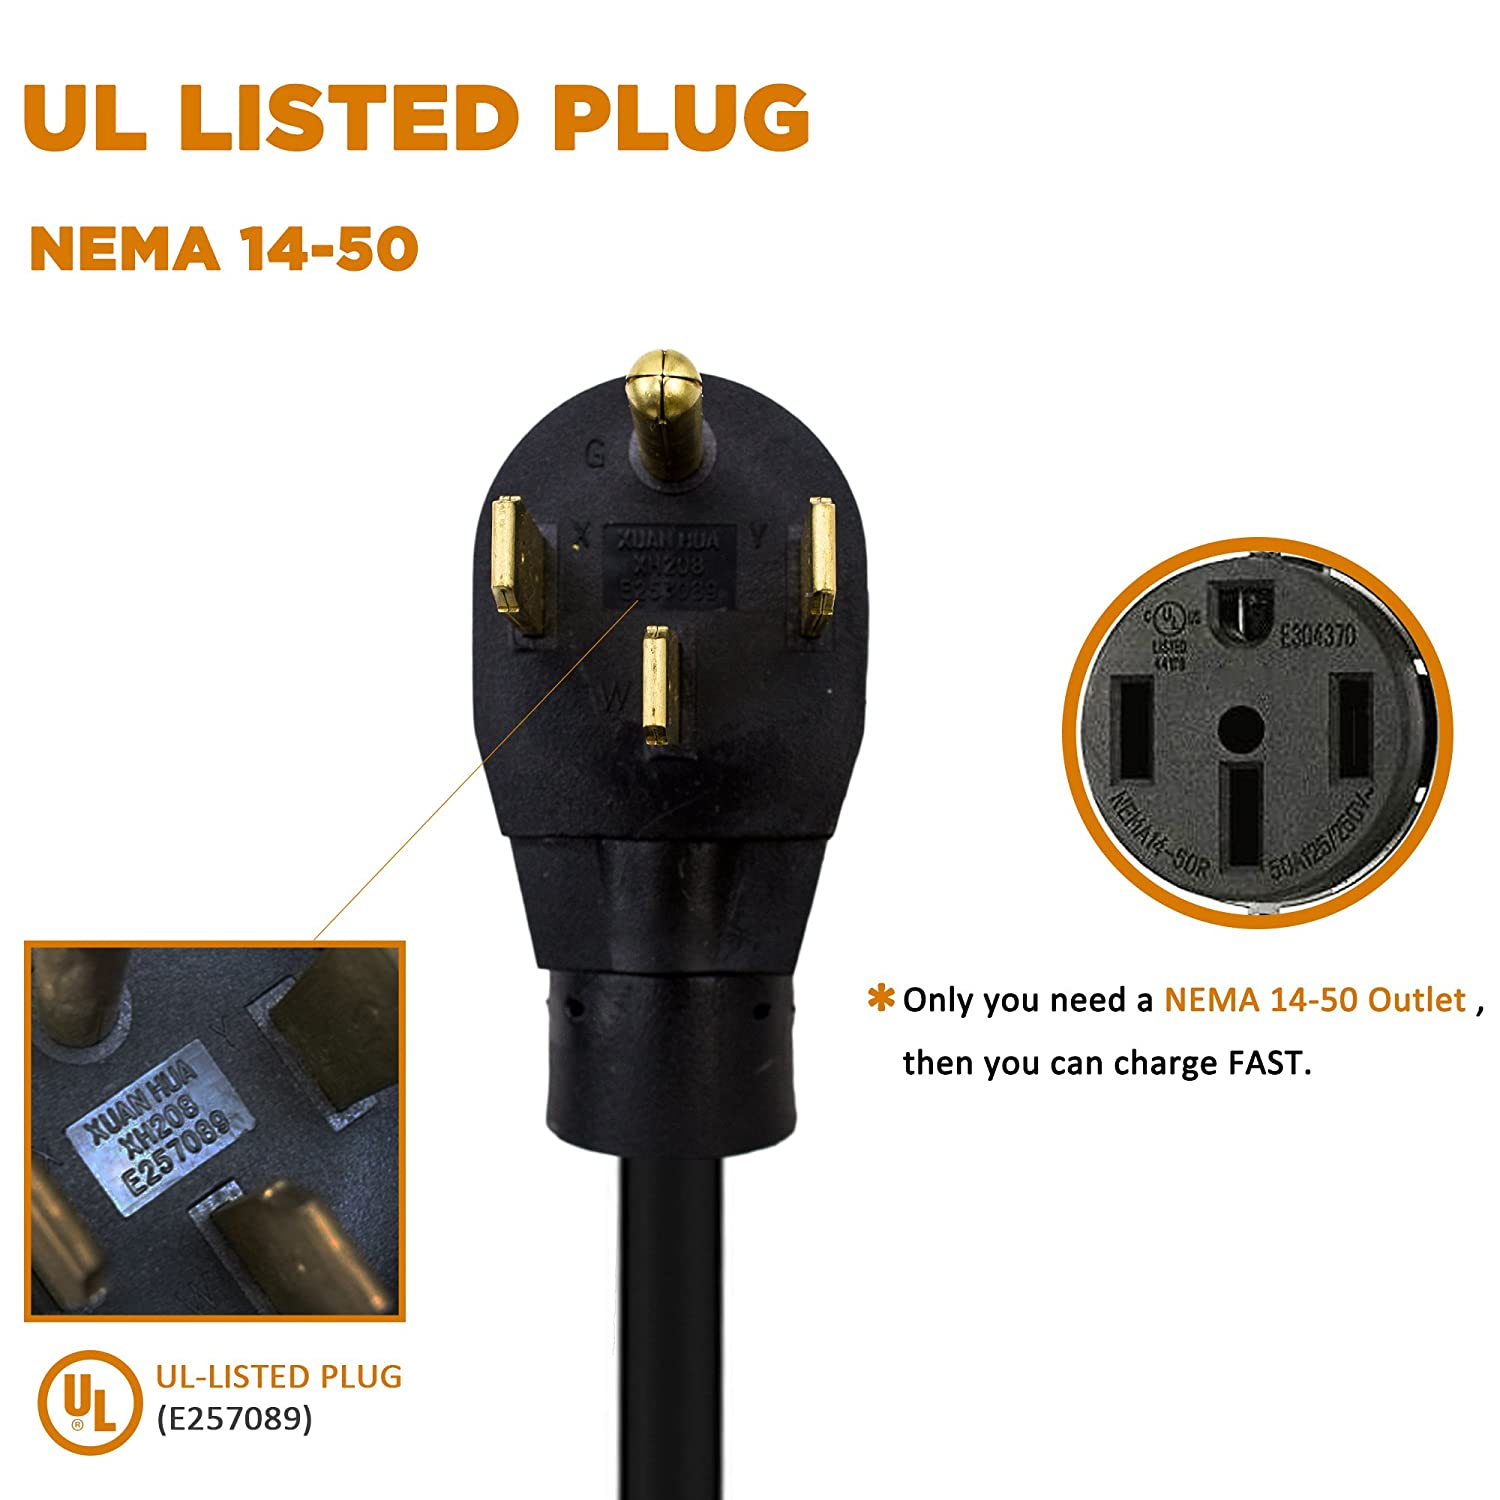 Electric Vehicle Charger Plug-in EV Charging Station with NEMA 14-50P Upgrade Version 240 Volt, 25ft Cable, 32 Amp MUSTART Level 2 Portable EV Charger